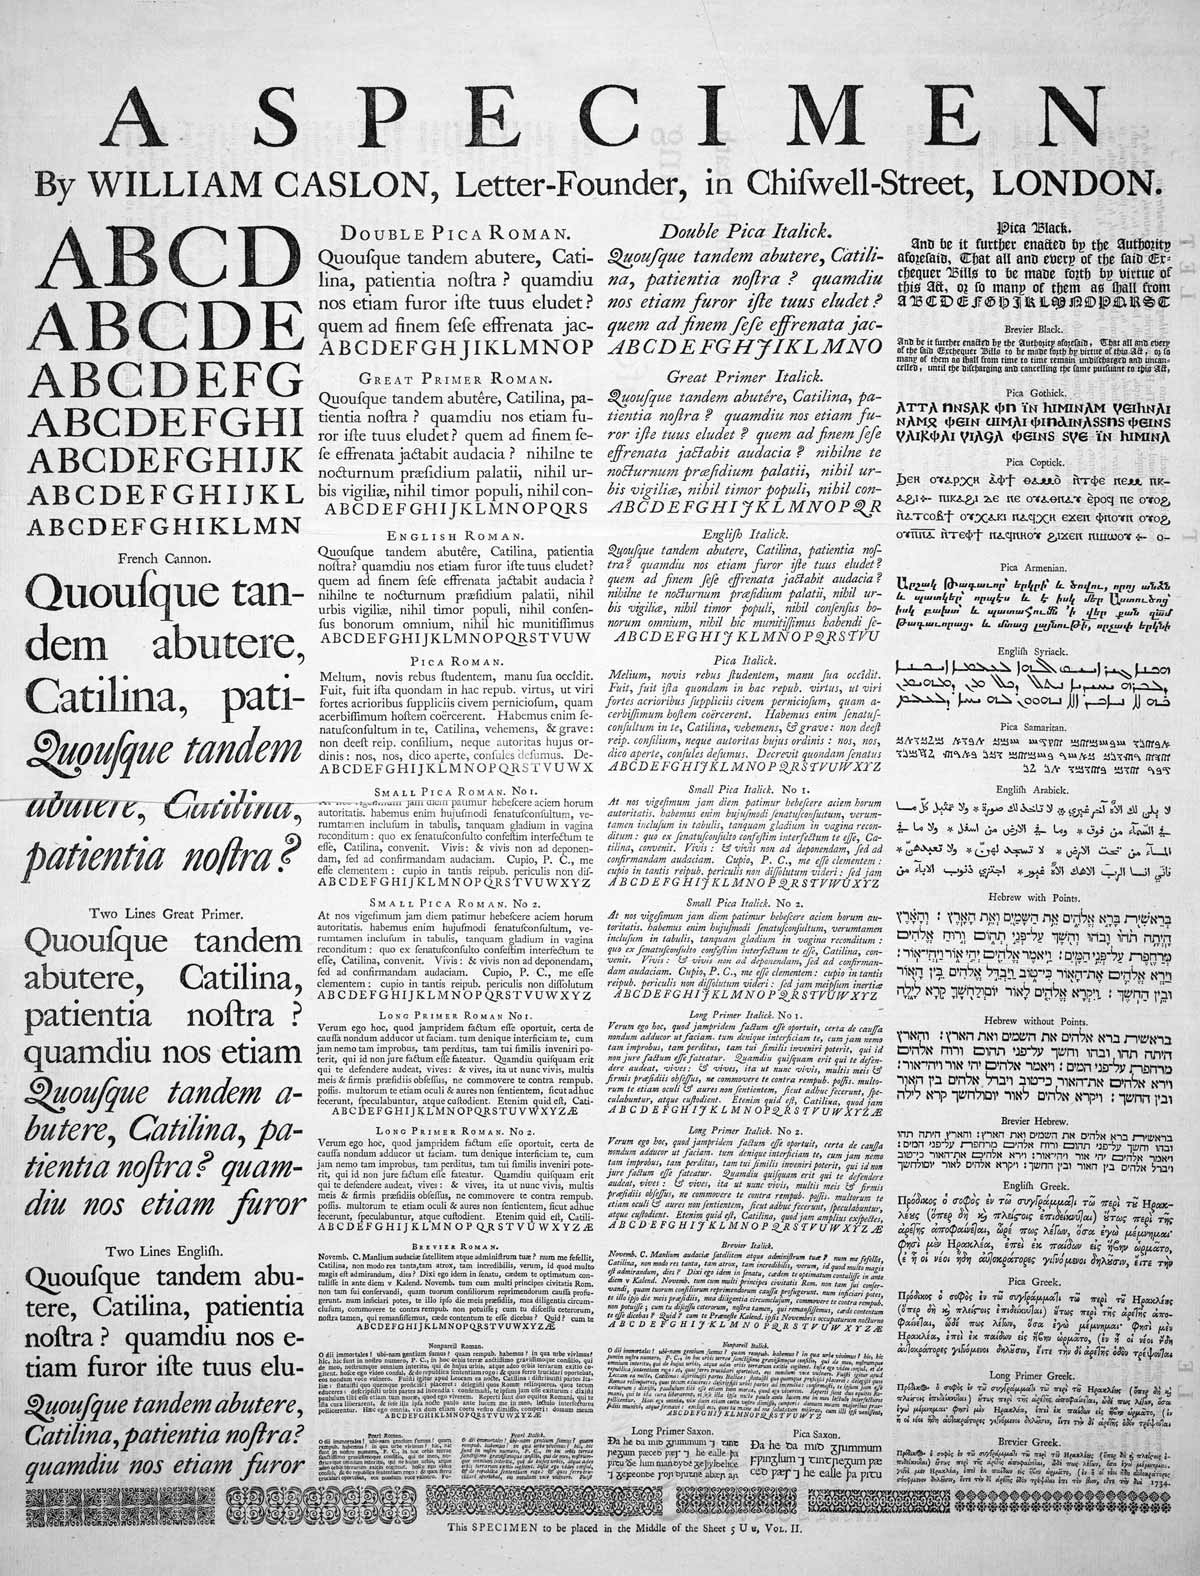 content/teaching/images/caslon-specimen.jpg